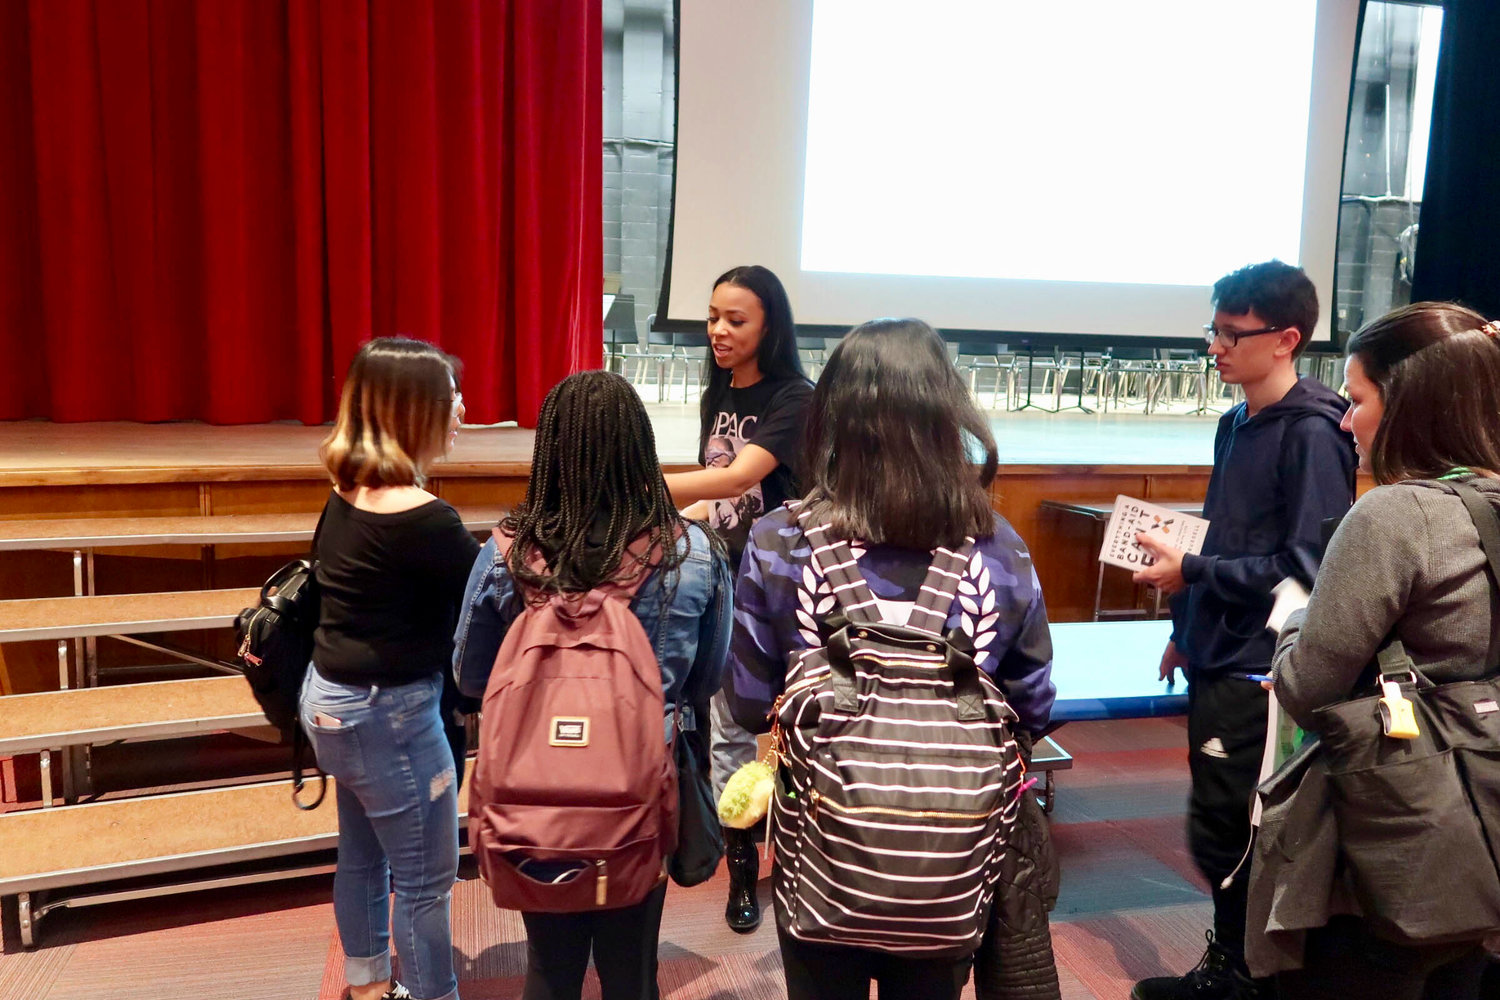 Lawrence High School graduate Nicole Russell signed her book and spoke to students at her alma mater on Jan. 15.